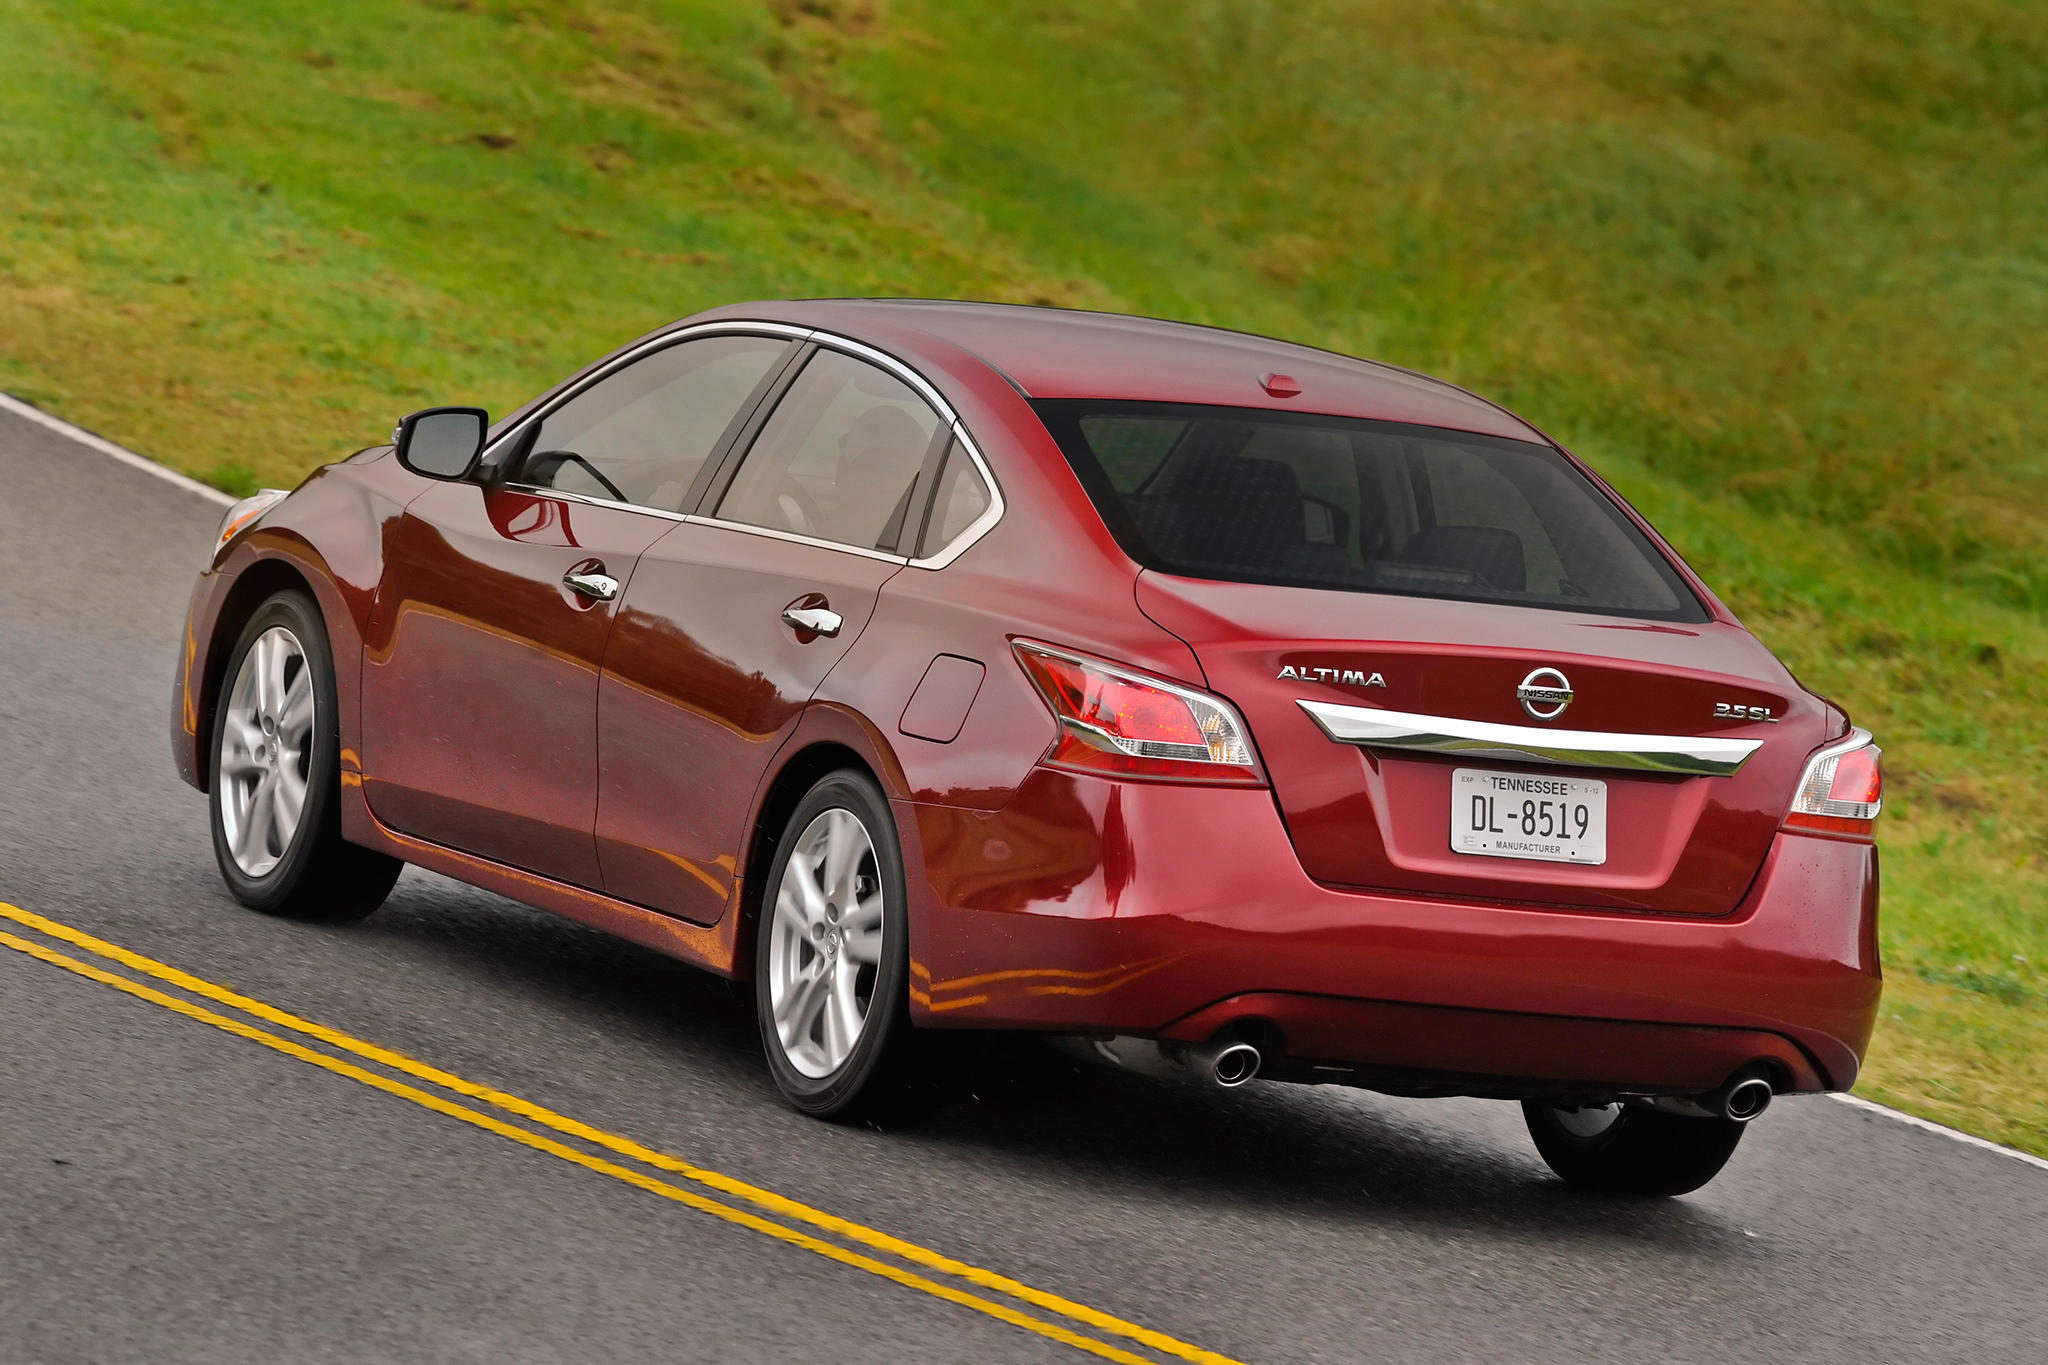 The Nissan Altima has been recalle four times in recent years.